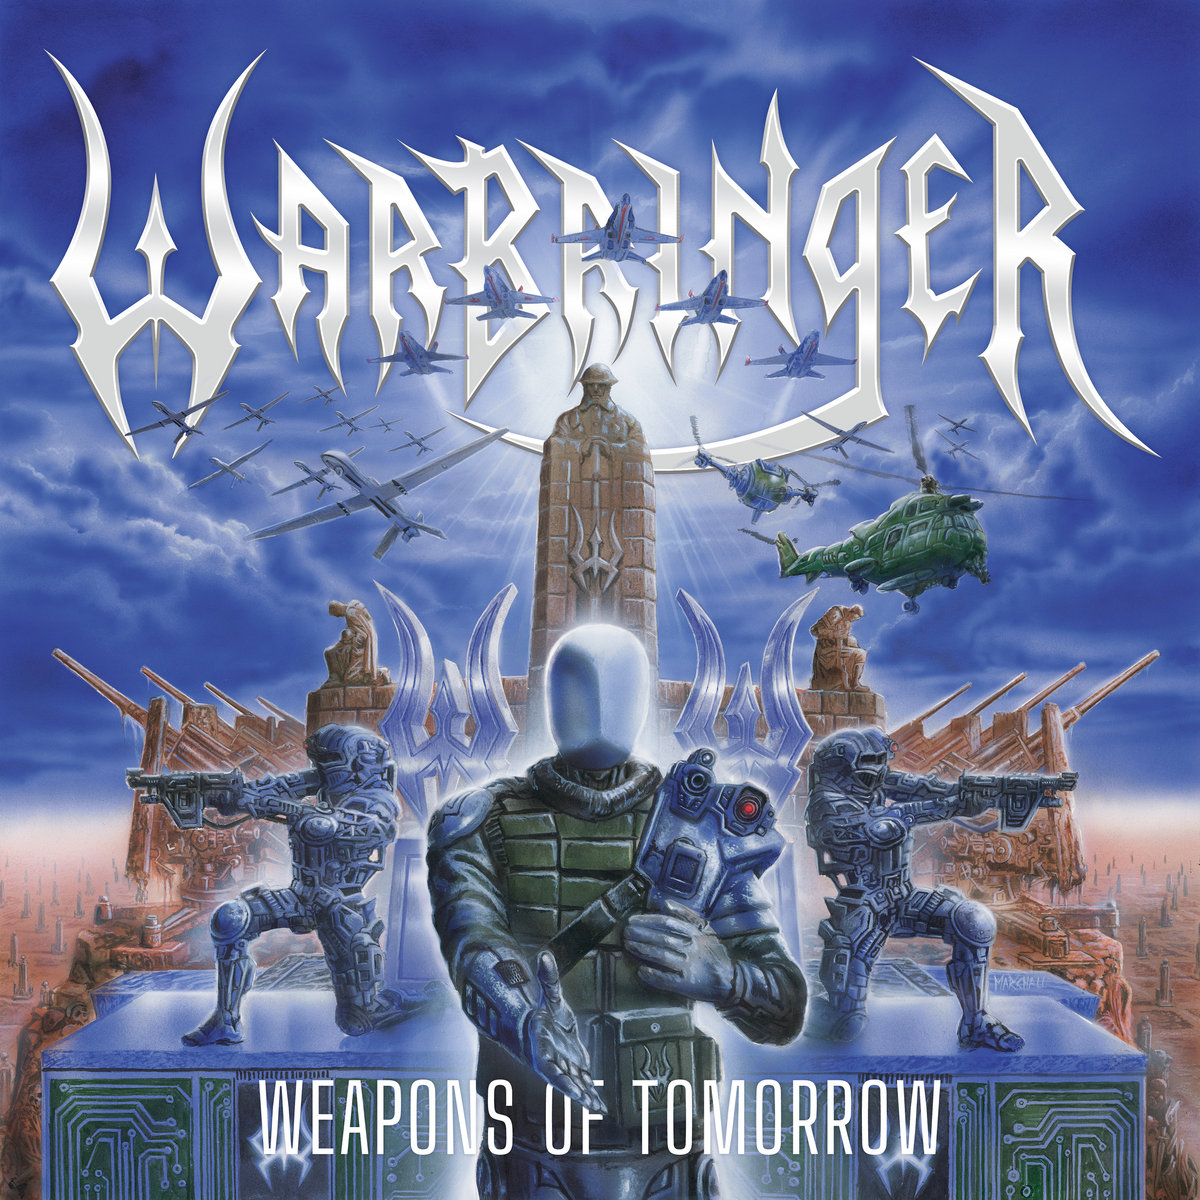 warbringer weapons of tomorrow cover art